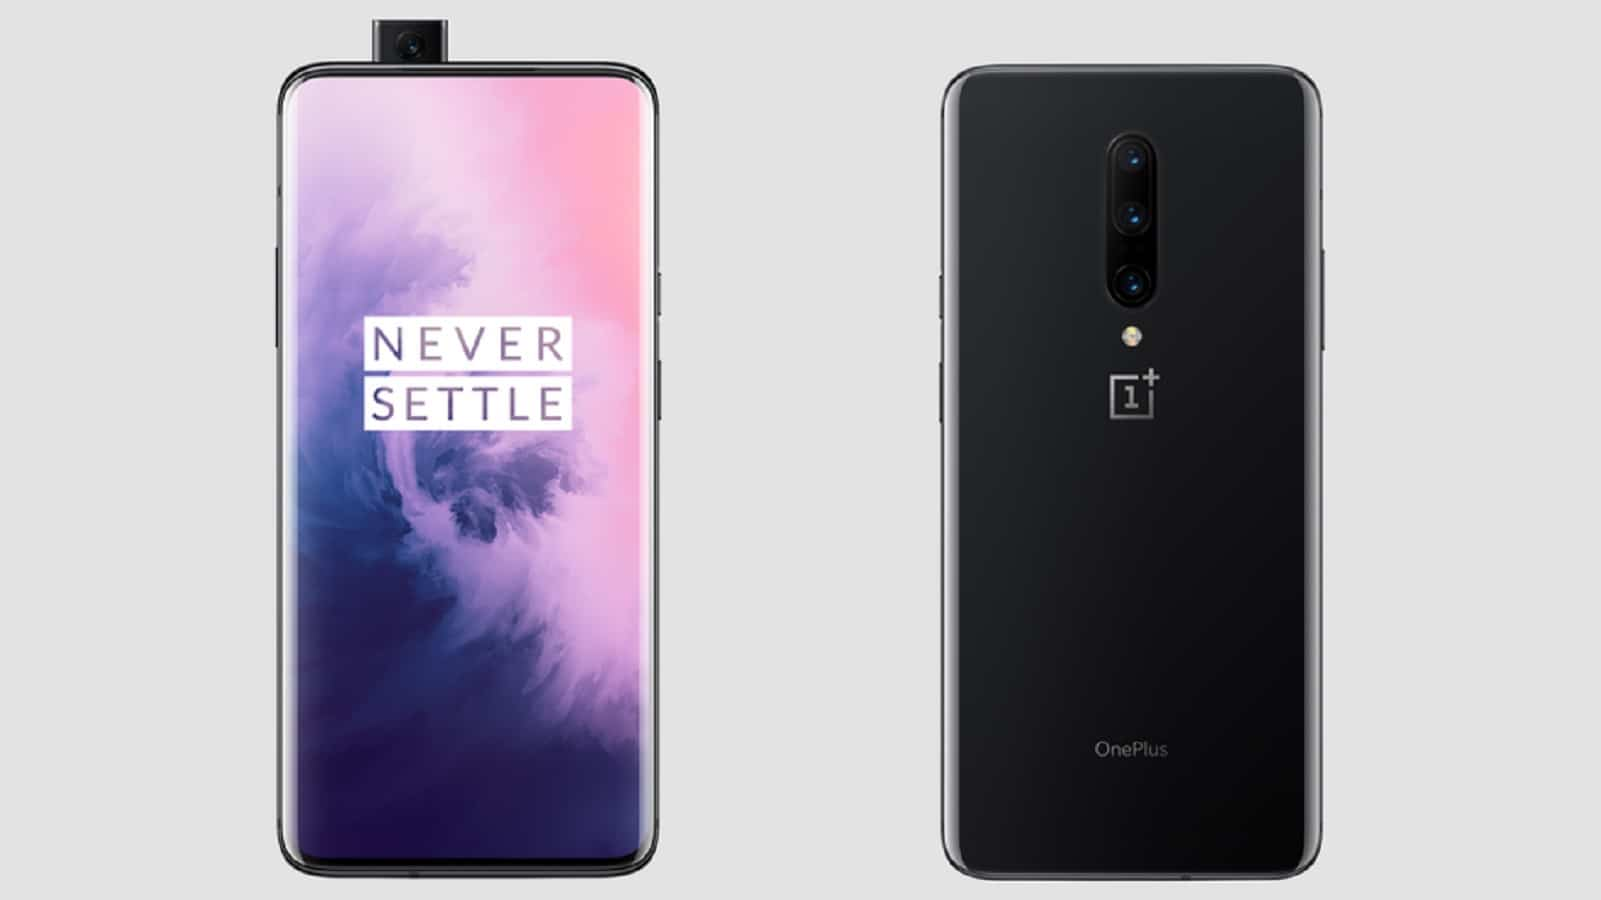 oneplus 7 pro front and back